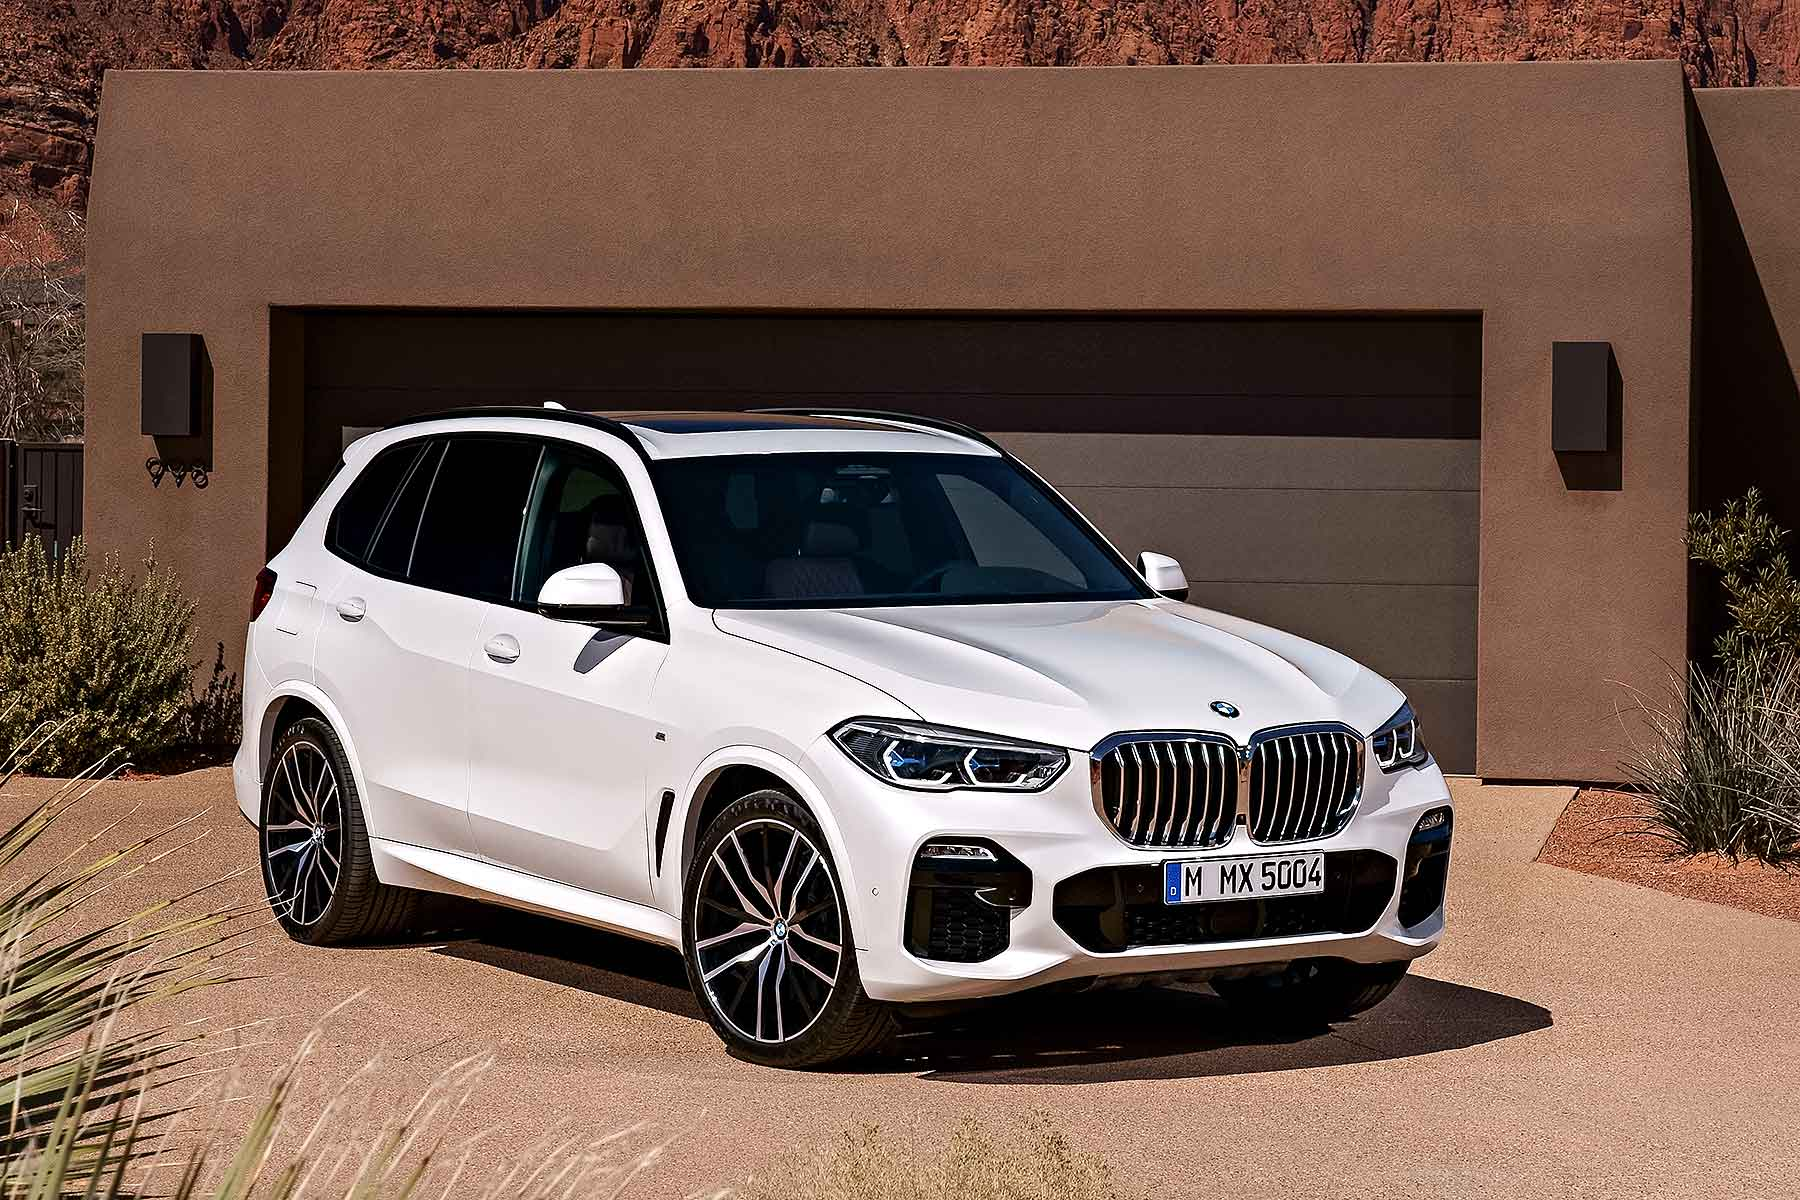 new bmw x5 suv goes large for 2018 motoring research. Black Bedroom Furniture Sets. Home Design Ideas